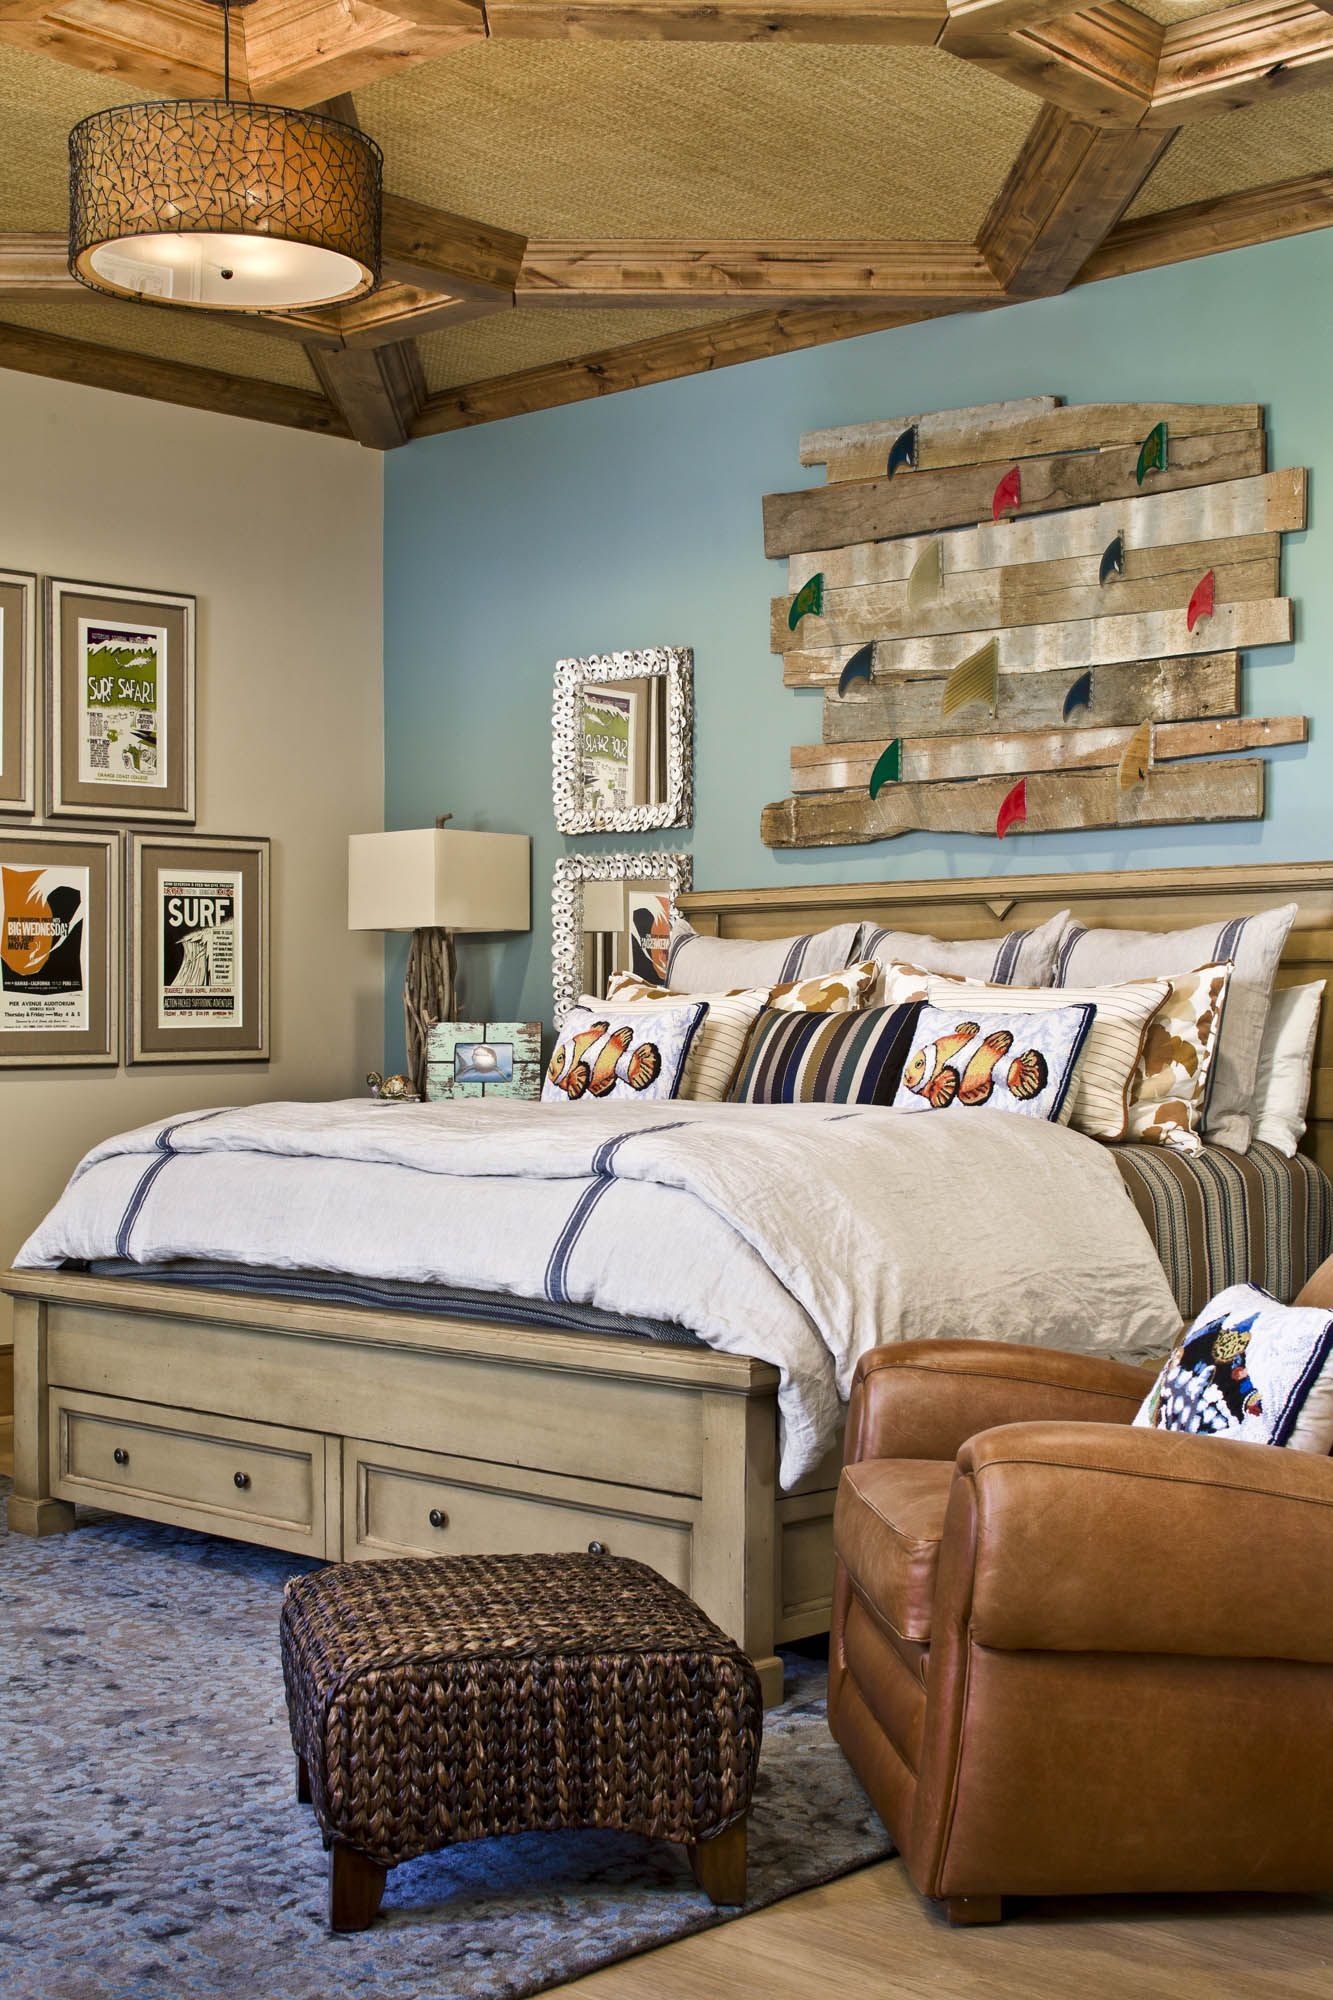 Driftwood Wall Art, Modern Lamp And Photo Frame. I Love Driftwood! ||  Bedrooms | Platinum Series Homes By Mark Molthan